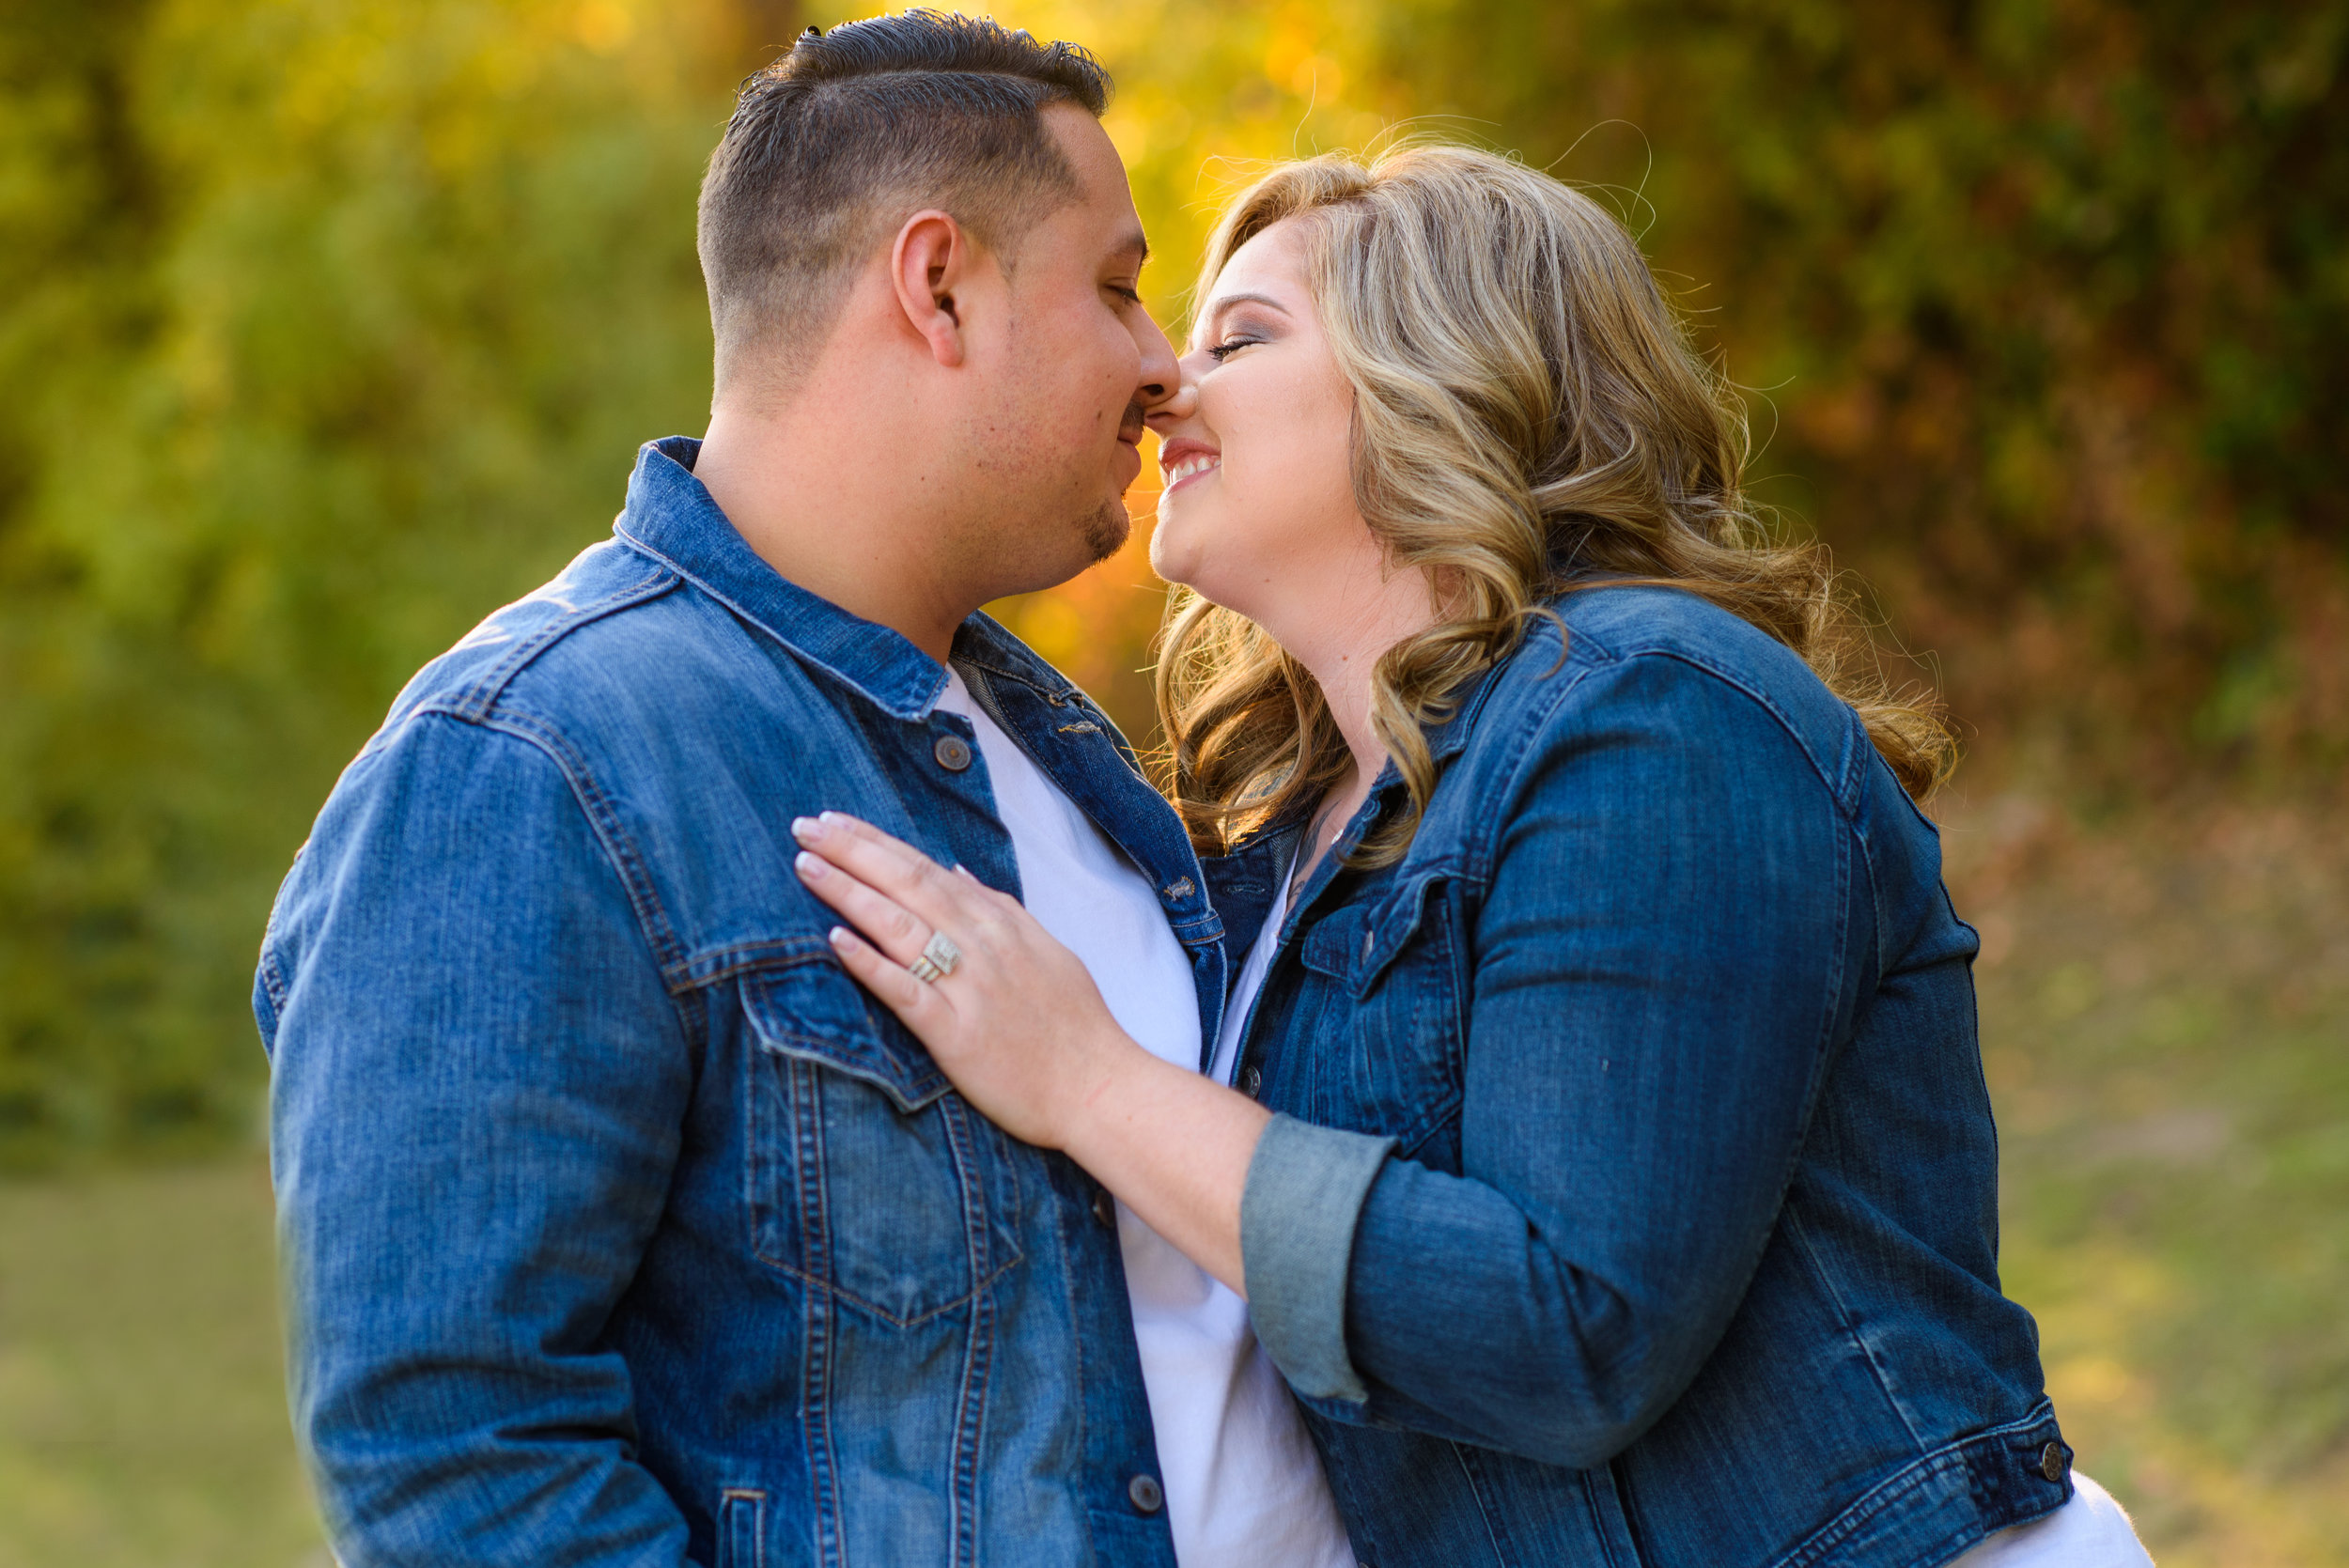 lynzie-javier-014-sacramento-california-engagement-wedding-photographer-katherine-nicole-photography.JPG